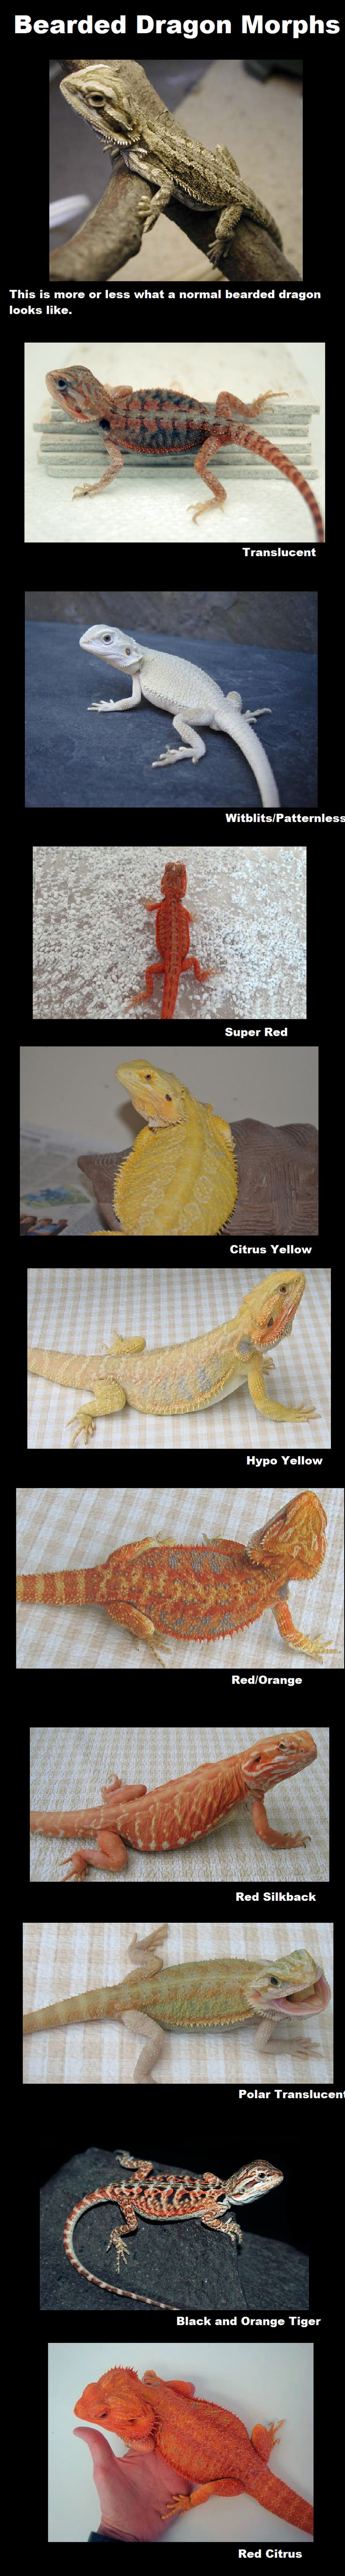 Bearded Dragon Morphs #funny #lol #humor